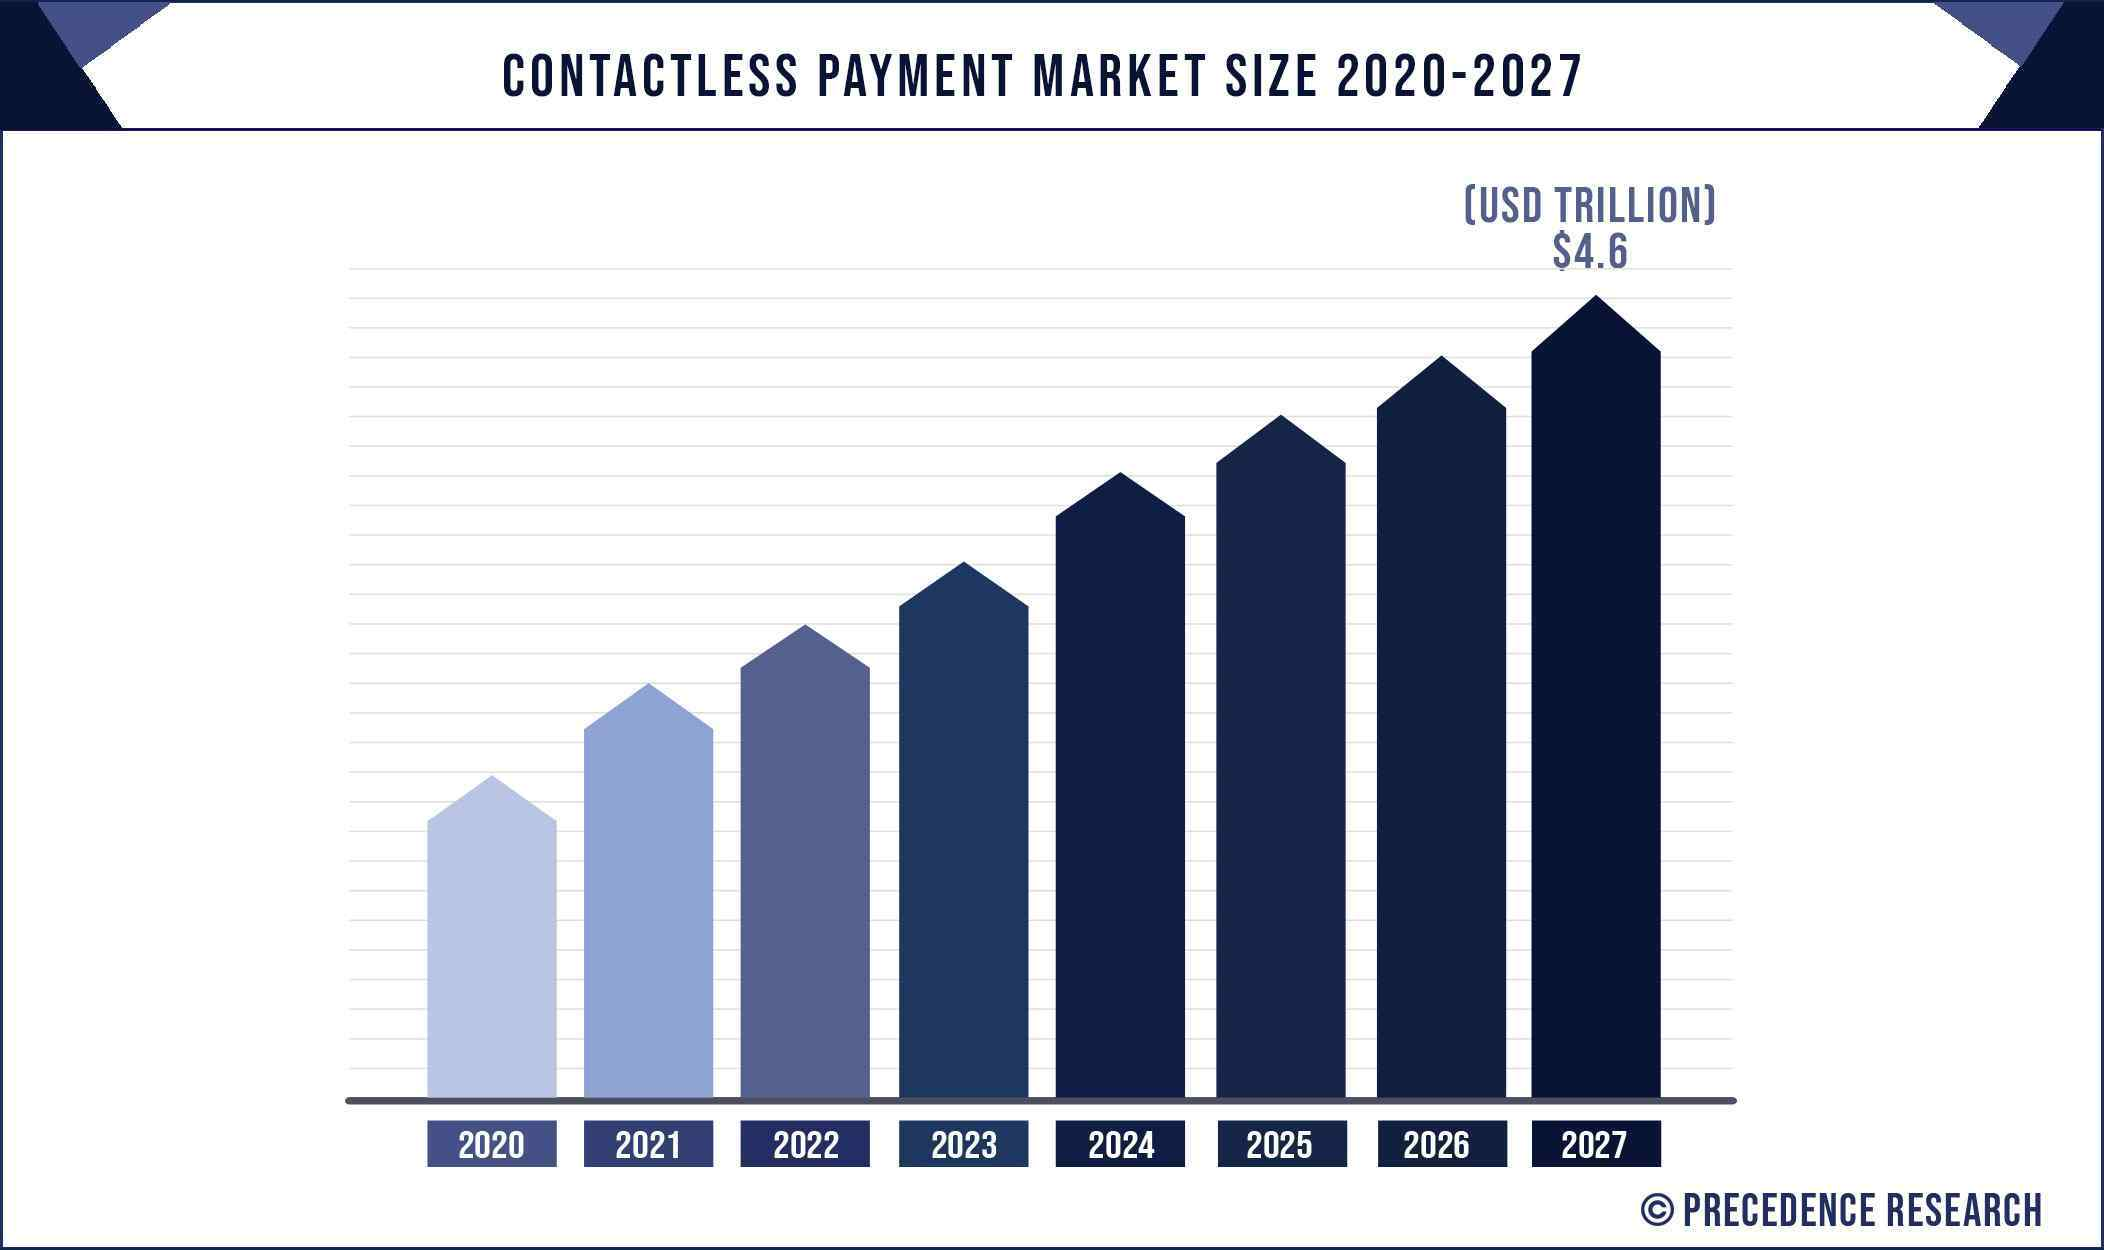 Contactless Payment Market Size 2020 to 2027